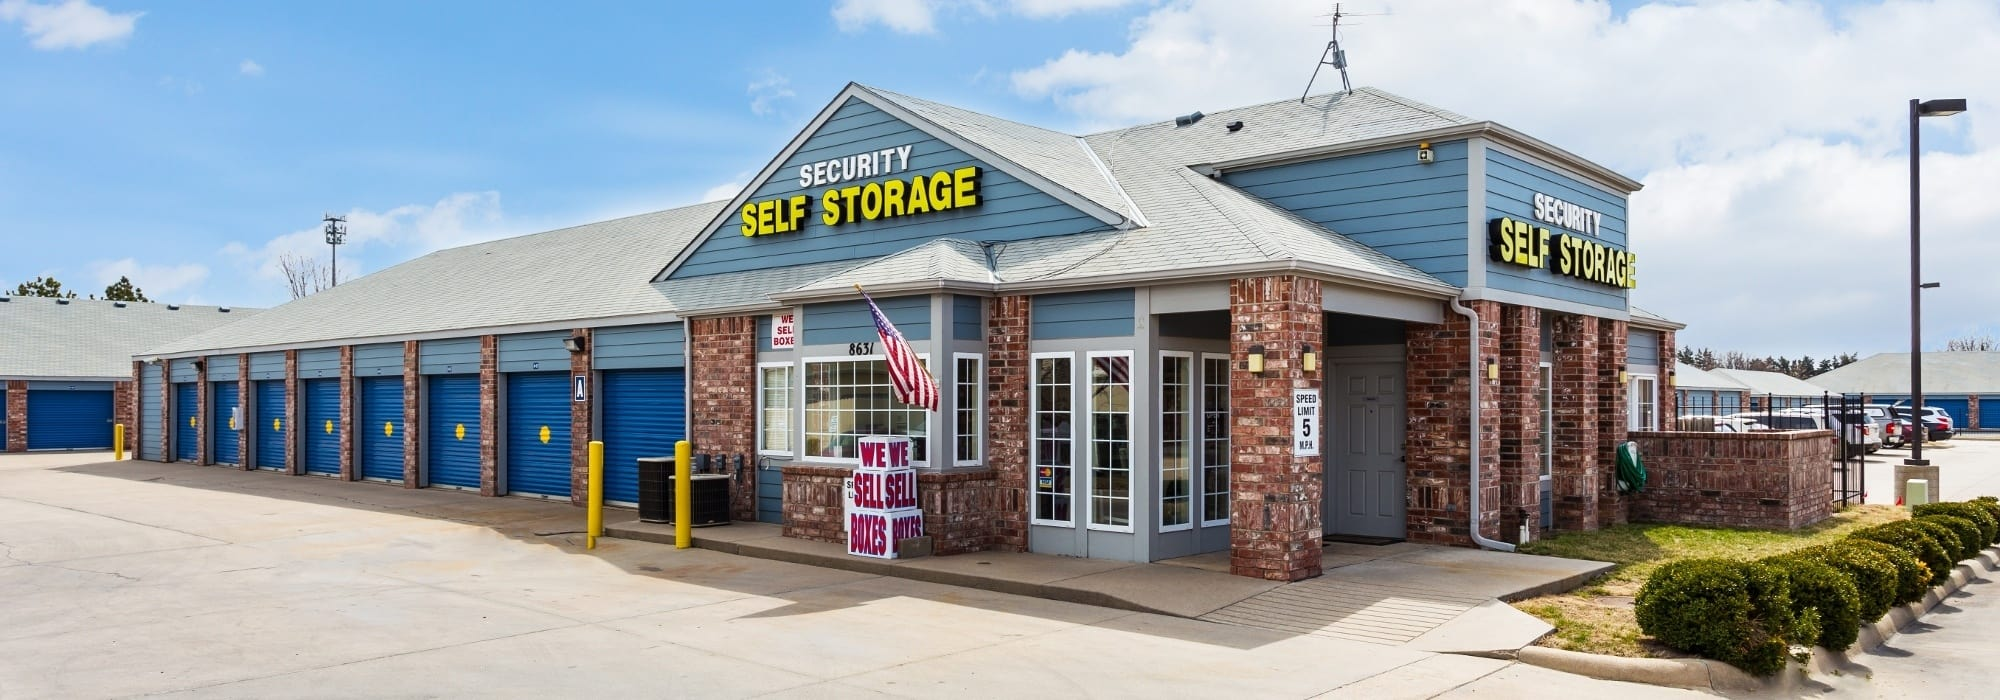 Self storage in Lenexa KS